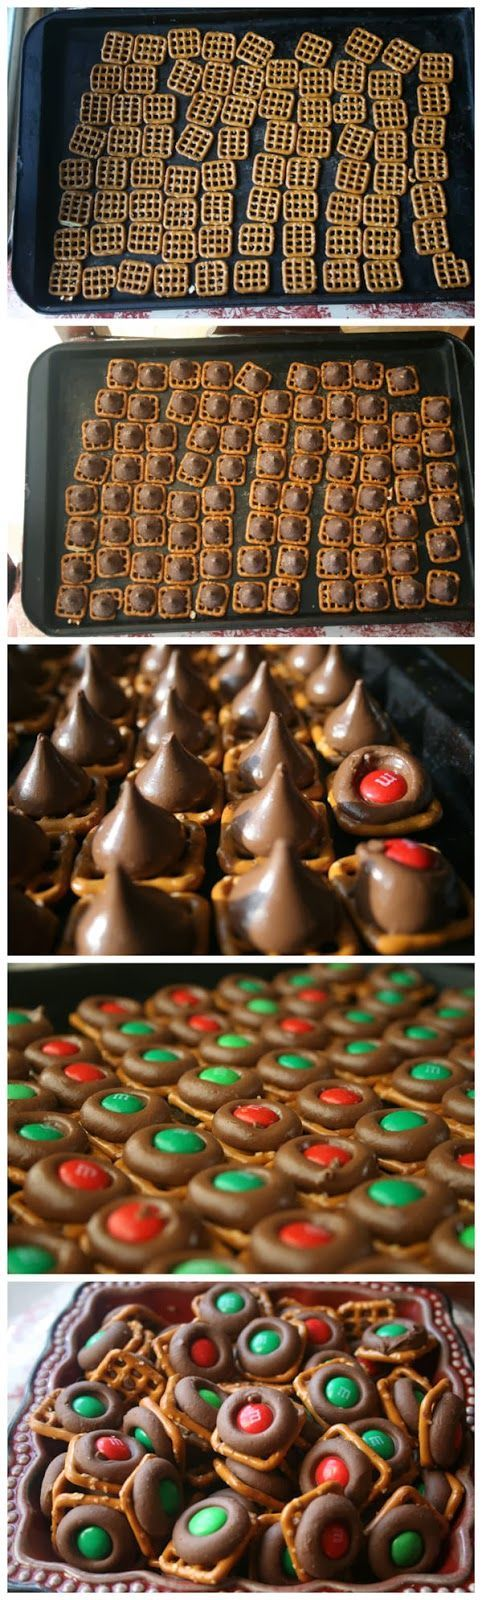 Easy Chocolate Pretzel Bites Recipe. Would be cute for Christmas, Easter, Halloween depending on color of candy. #snack #chocolate #pretzels..